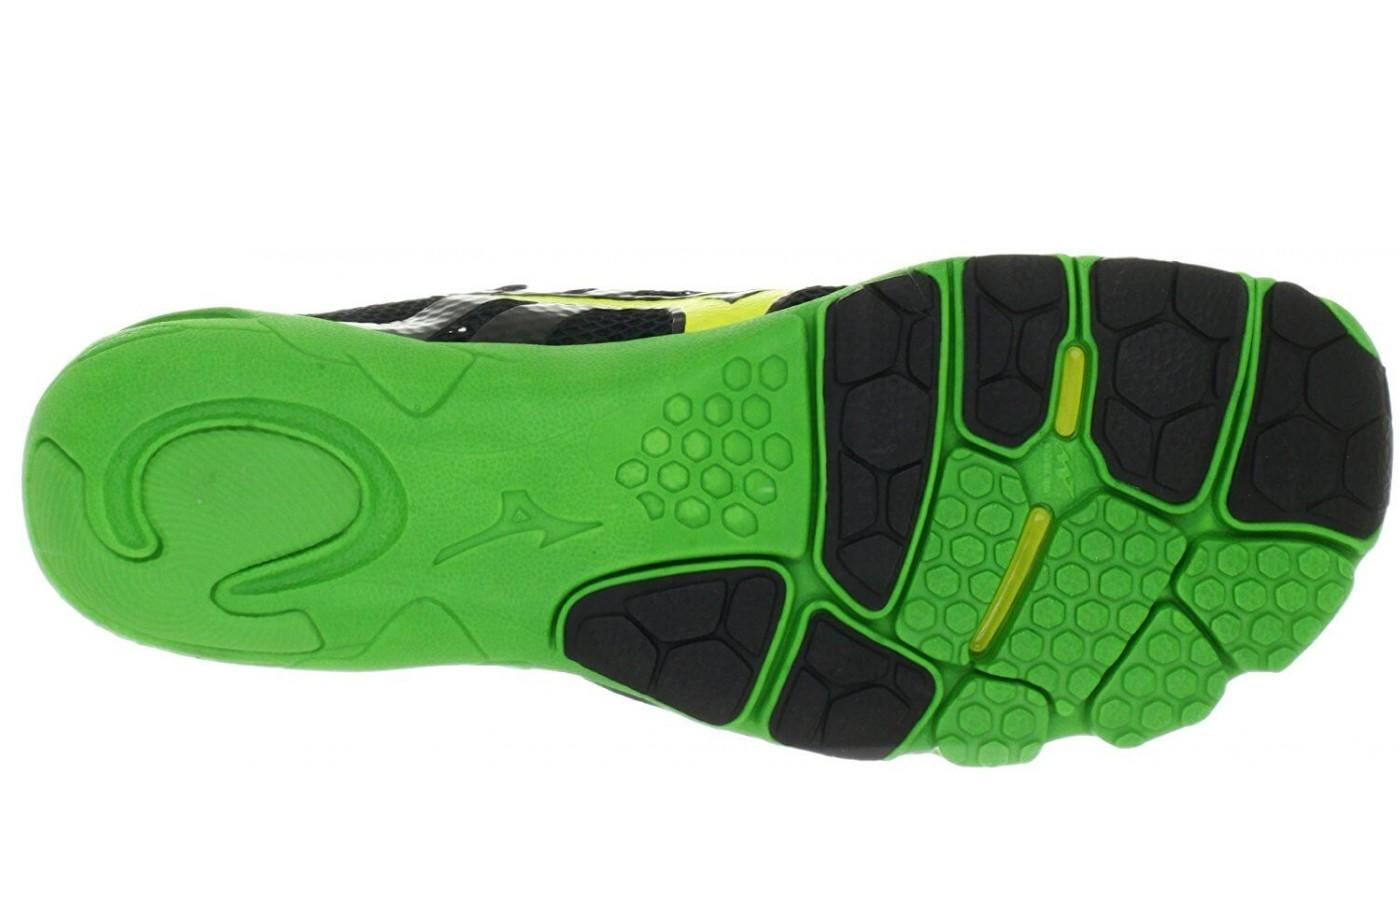 The outsole on the Mizuno Wave Evo Levitas is thin yet durable